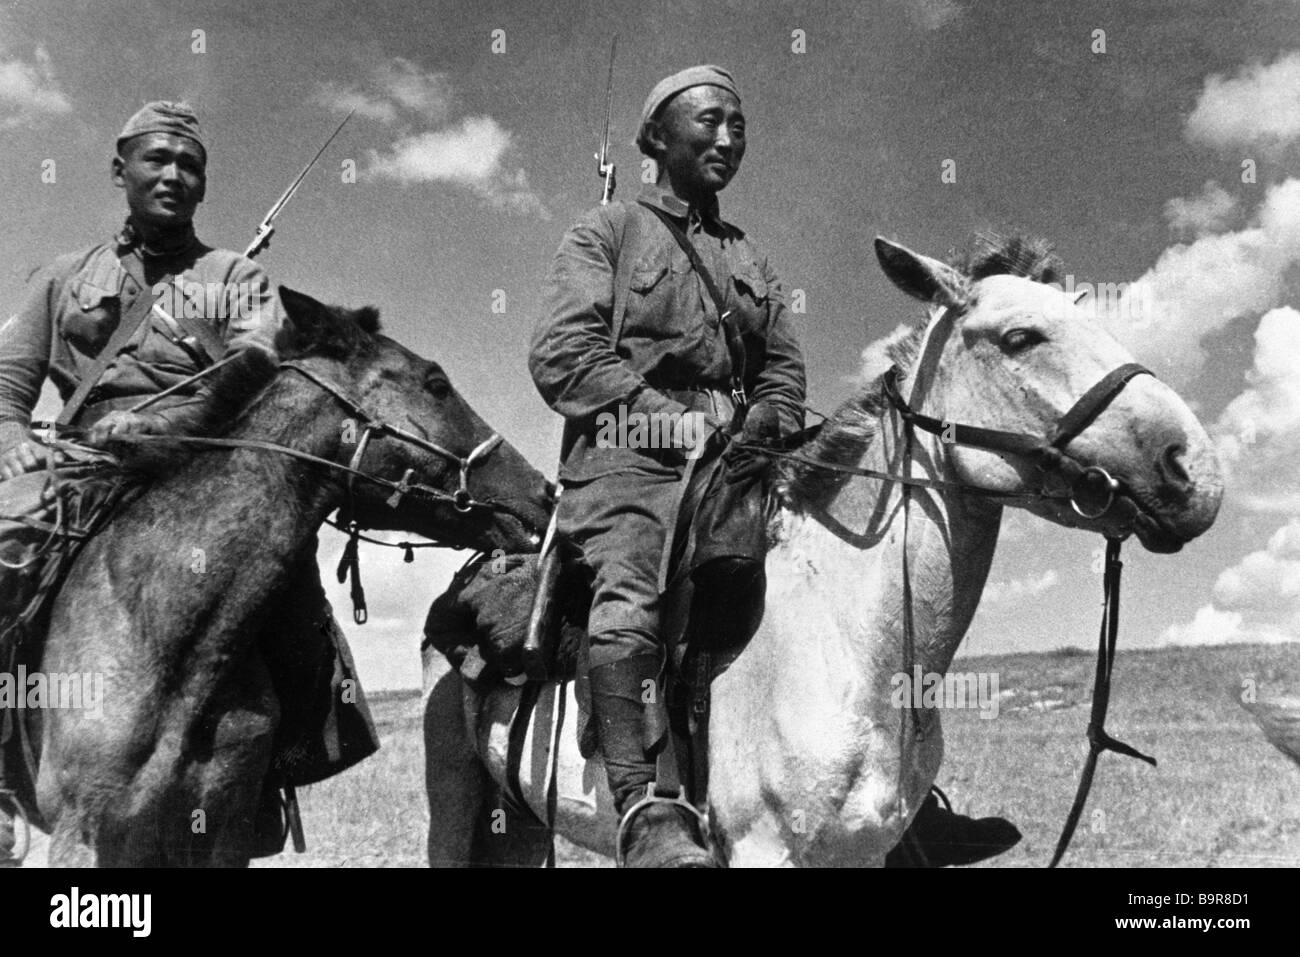 Mongolian cavalry during the military action at Khalkhin Gol - Stock Image